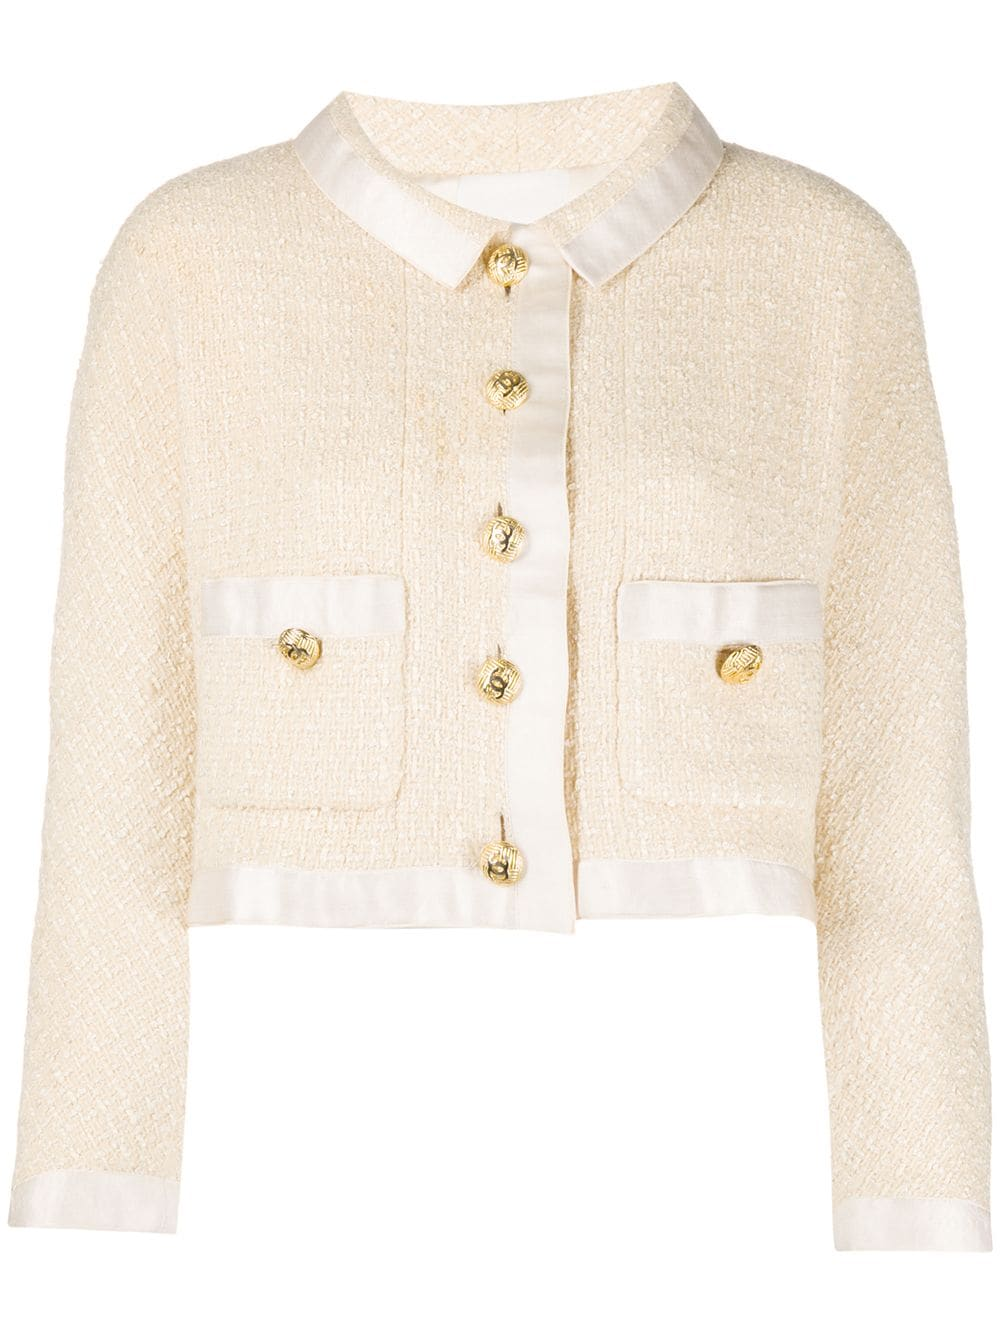 chanel-pre-owned-button-up-tweed-cropped-jacket